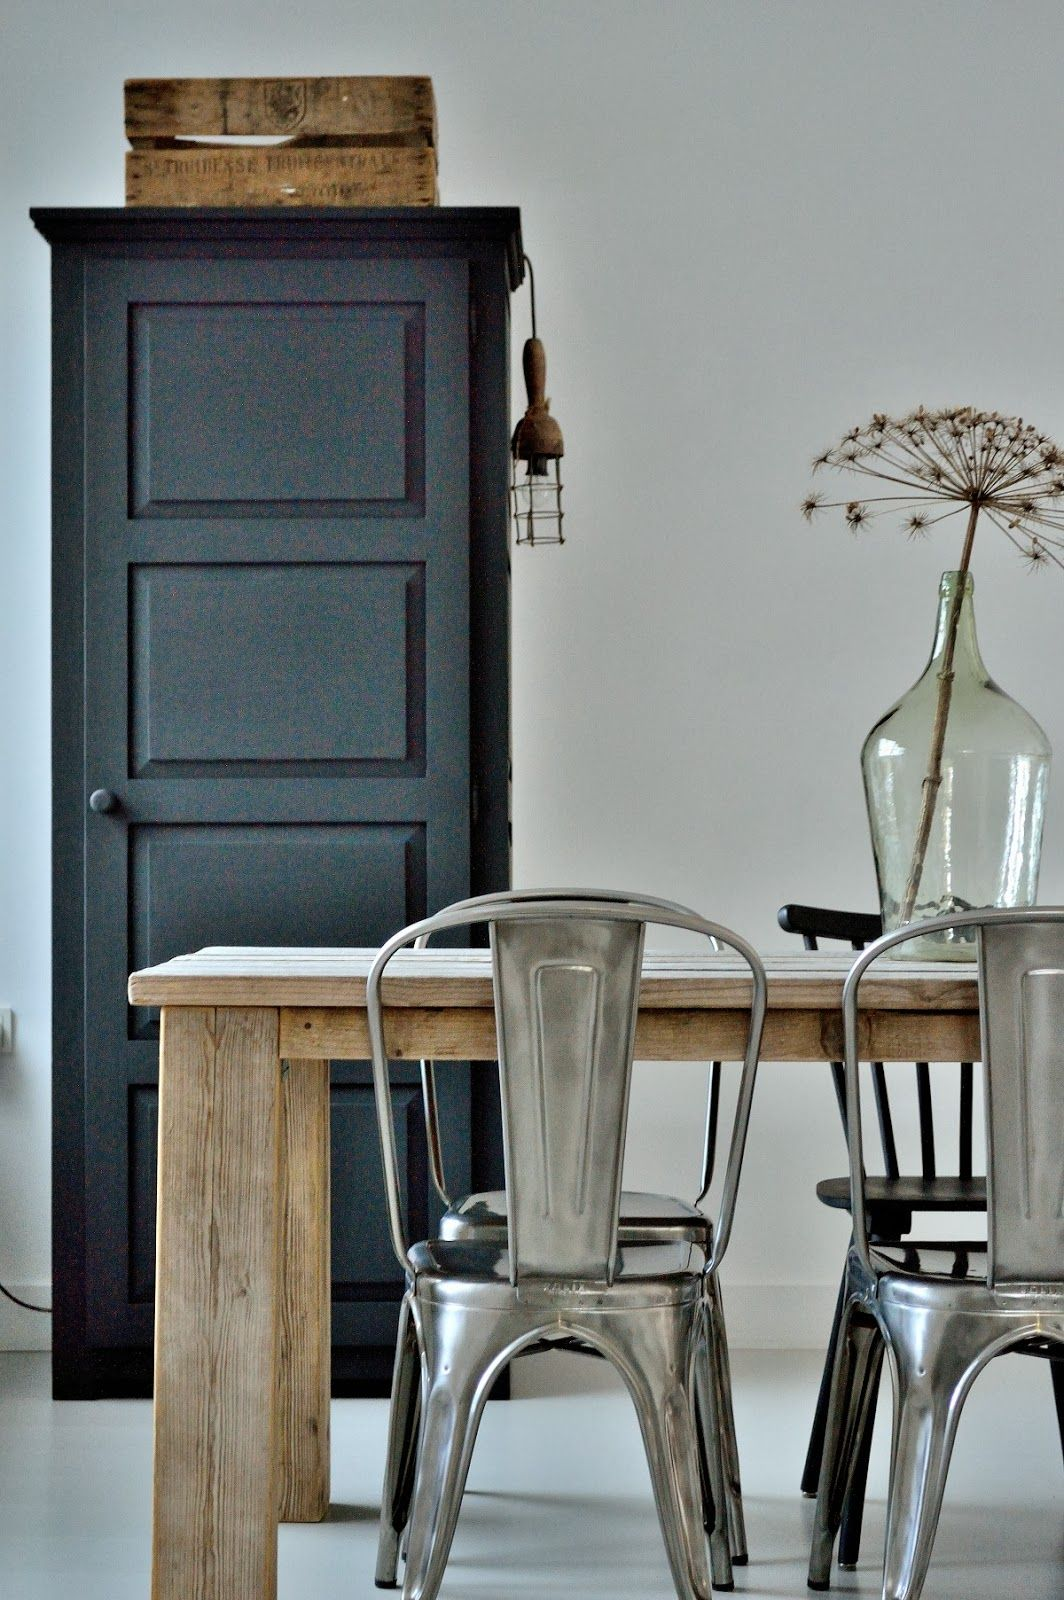 Mix Holz-Metall | Metall-Stühle - Metal Chairs | Pinterest | Metall ...